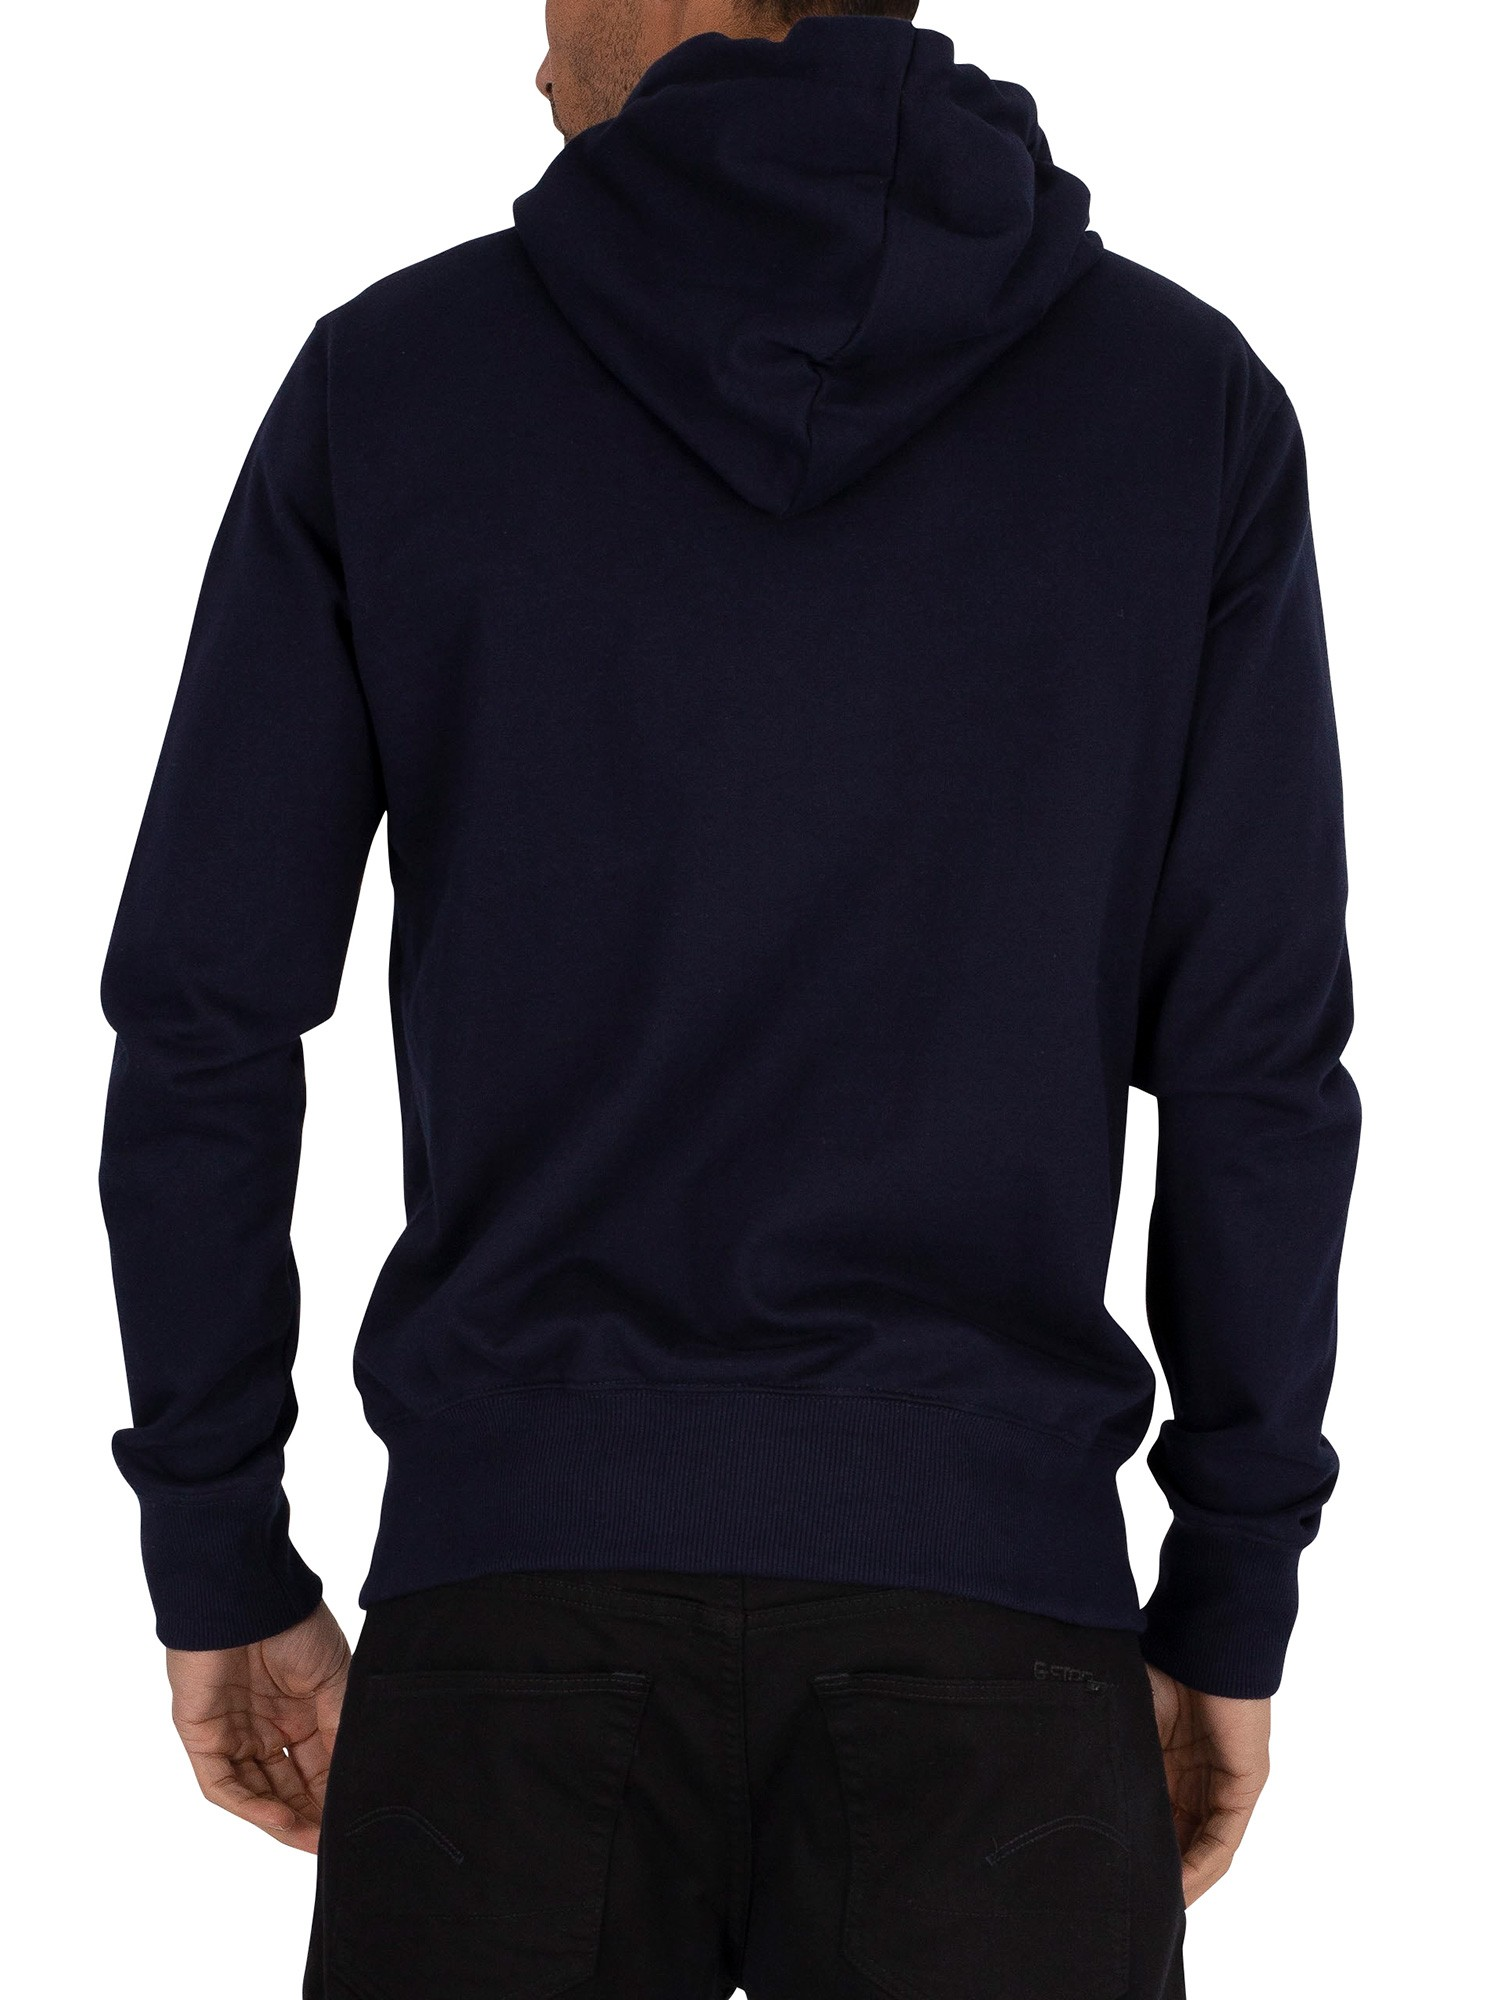 Superdry Collective Zip Hoodie - Rich Navy